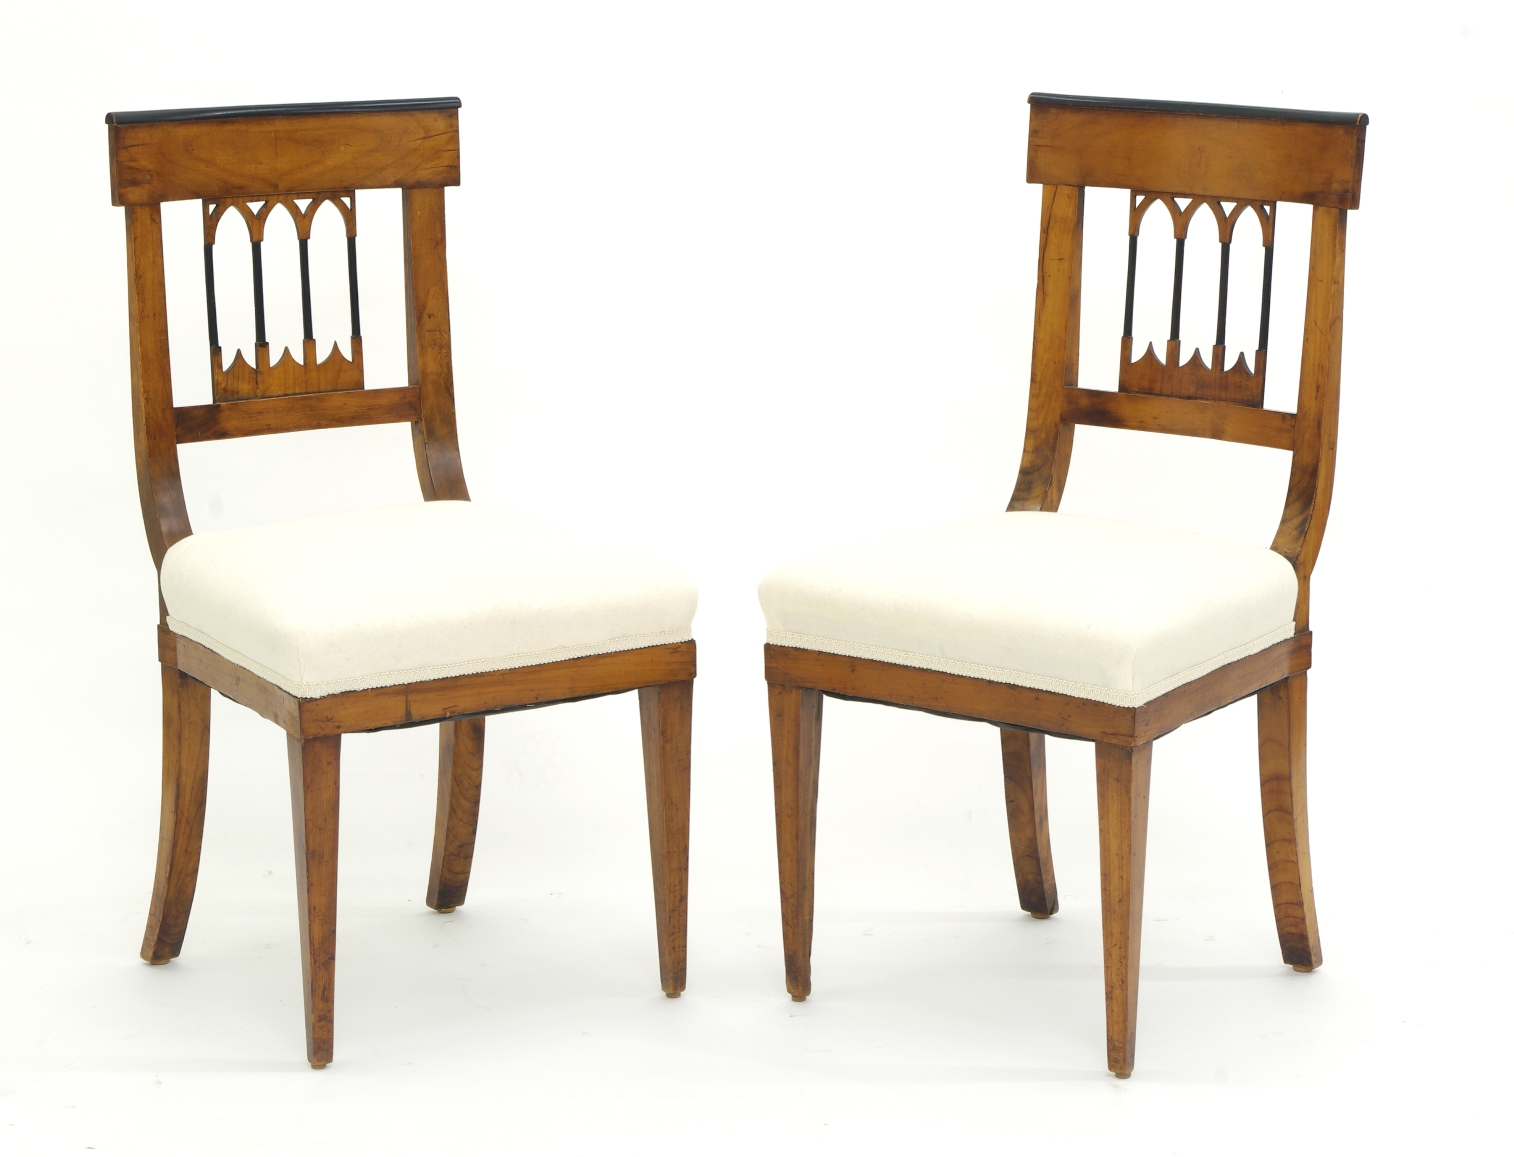 View 3: Set of Four Biedermeier Side Chairs, c. 1810-20